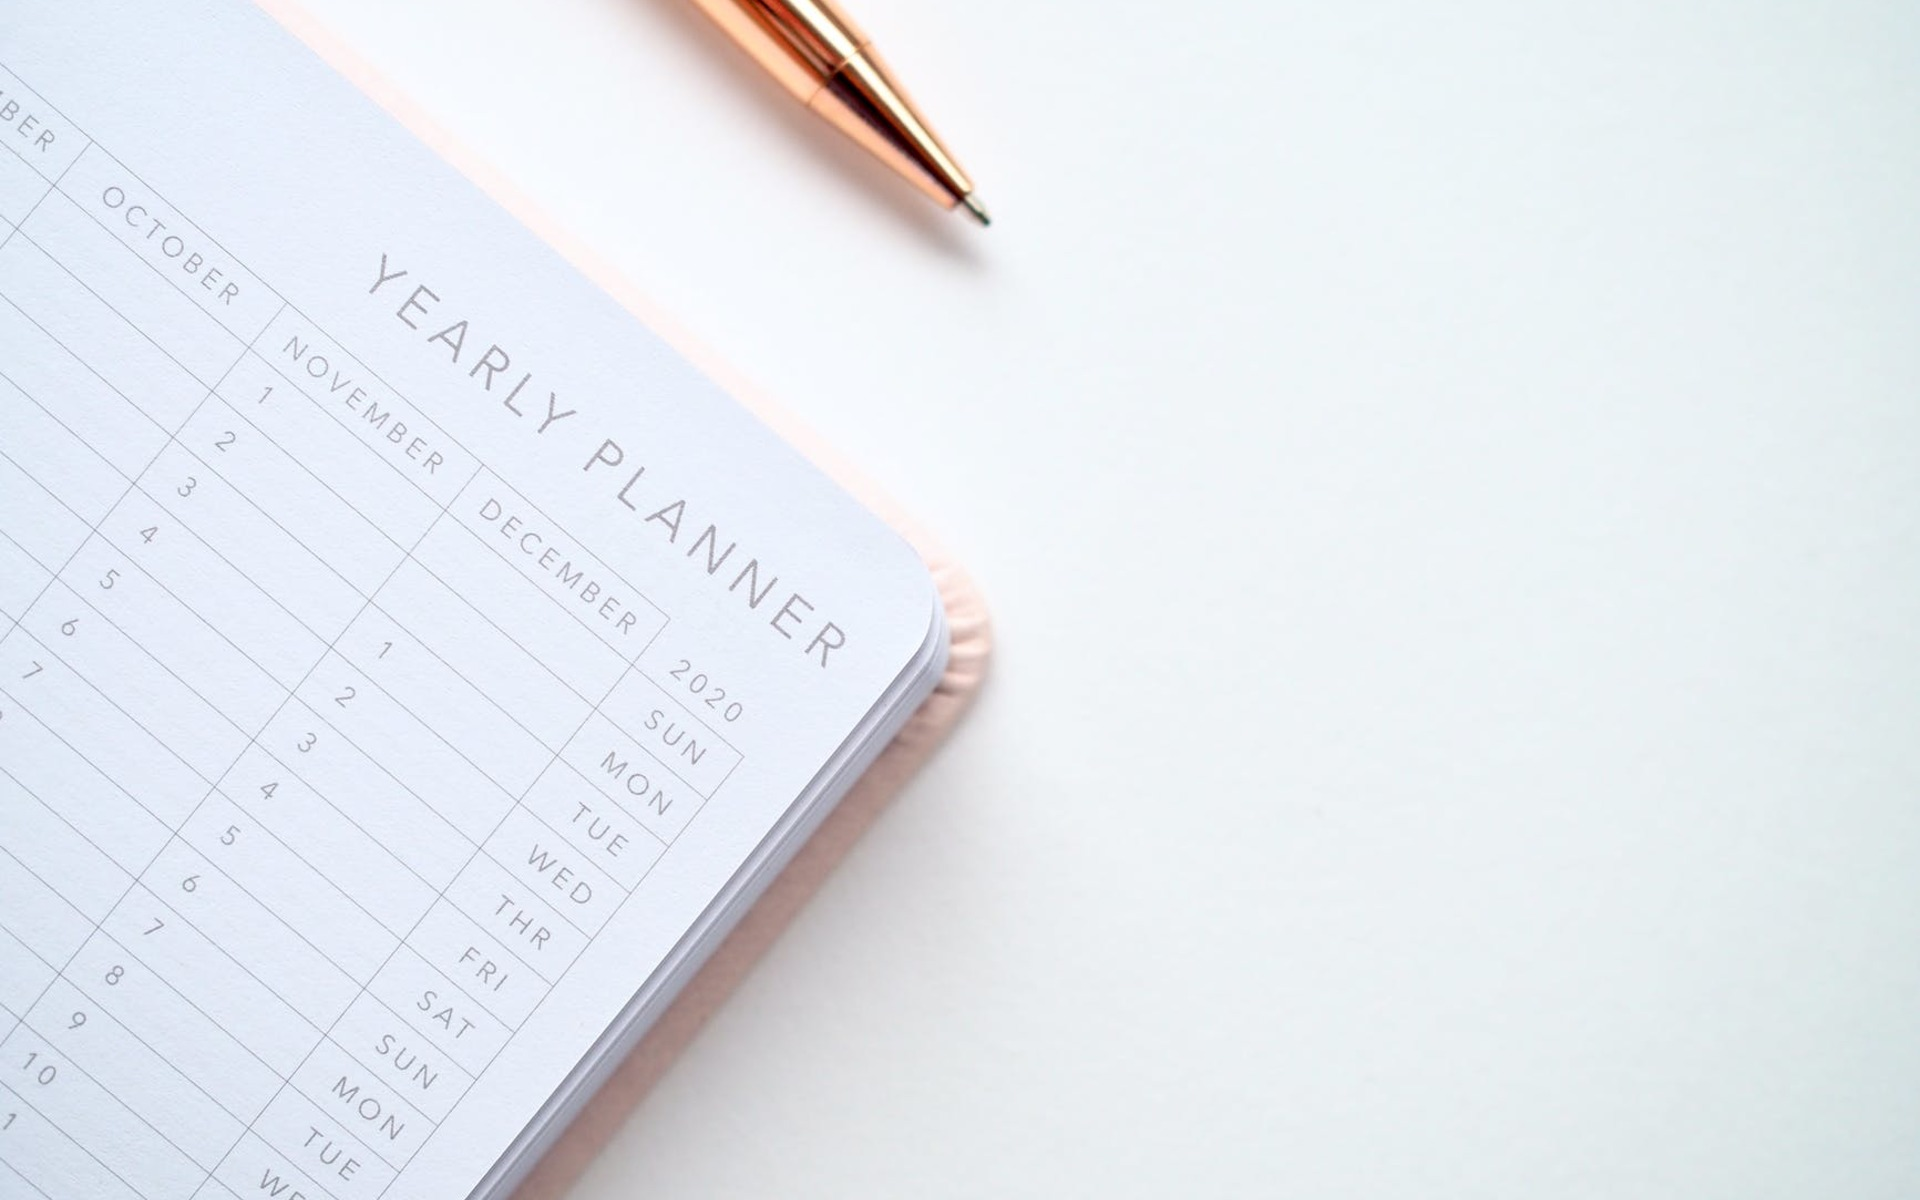 A 2020 diary planner and gold pen